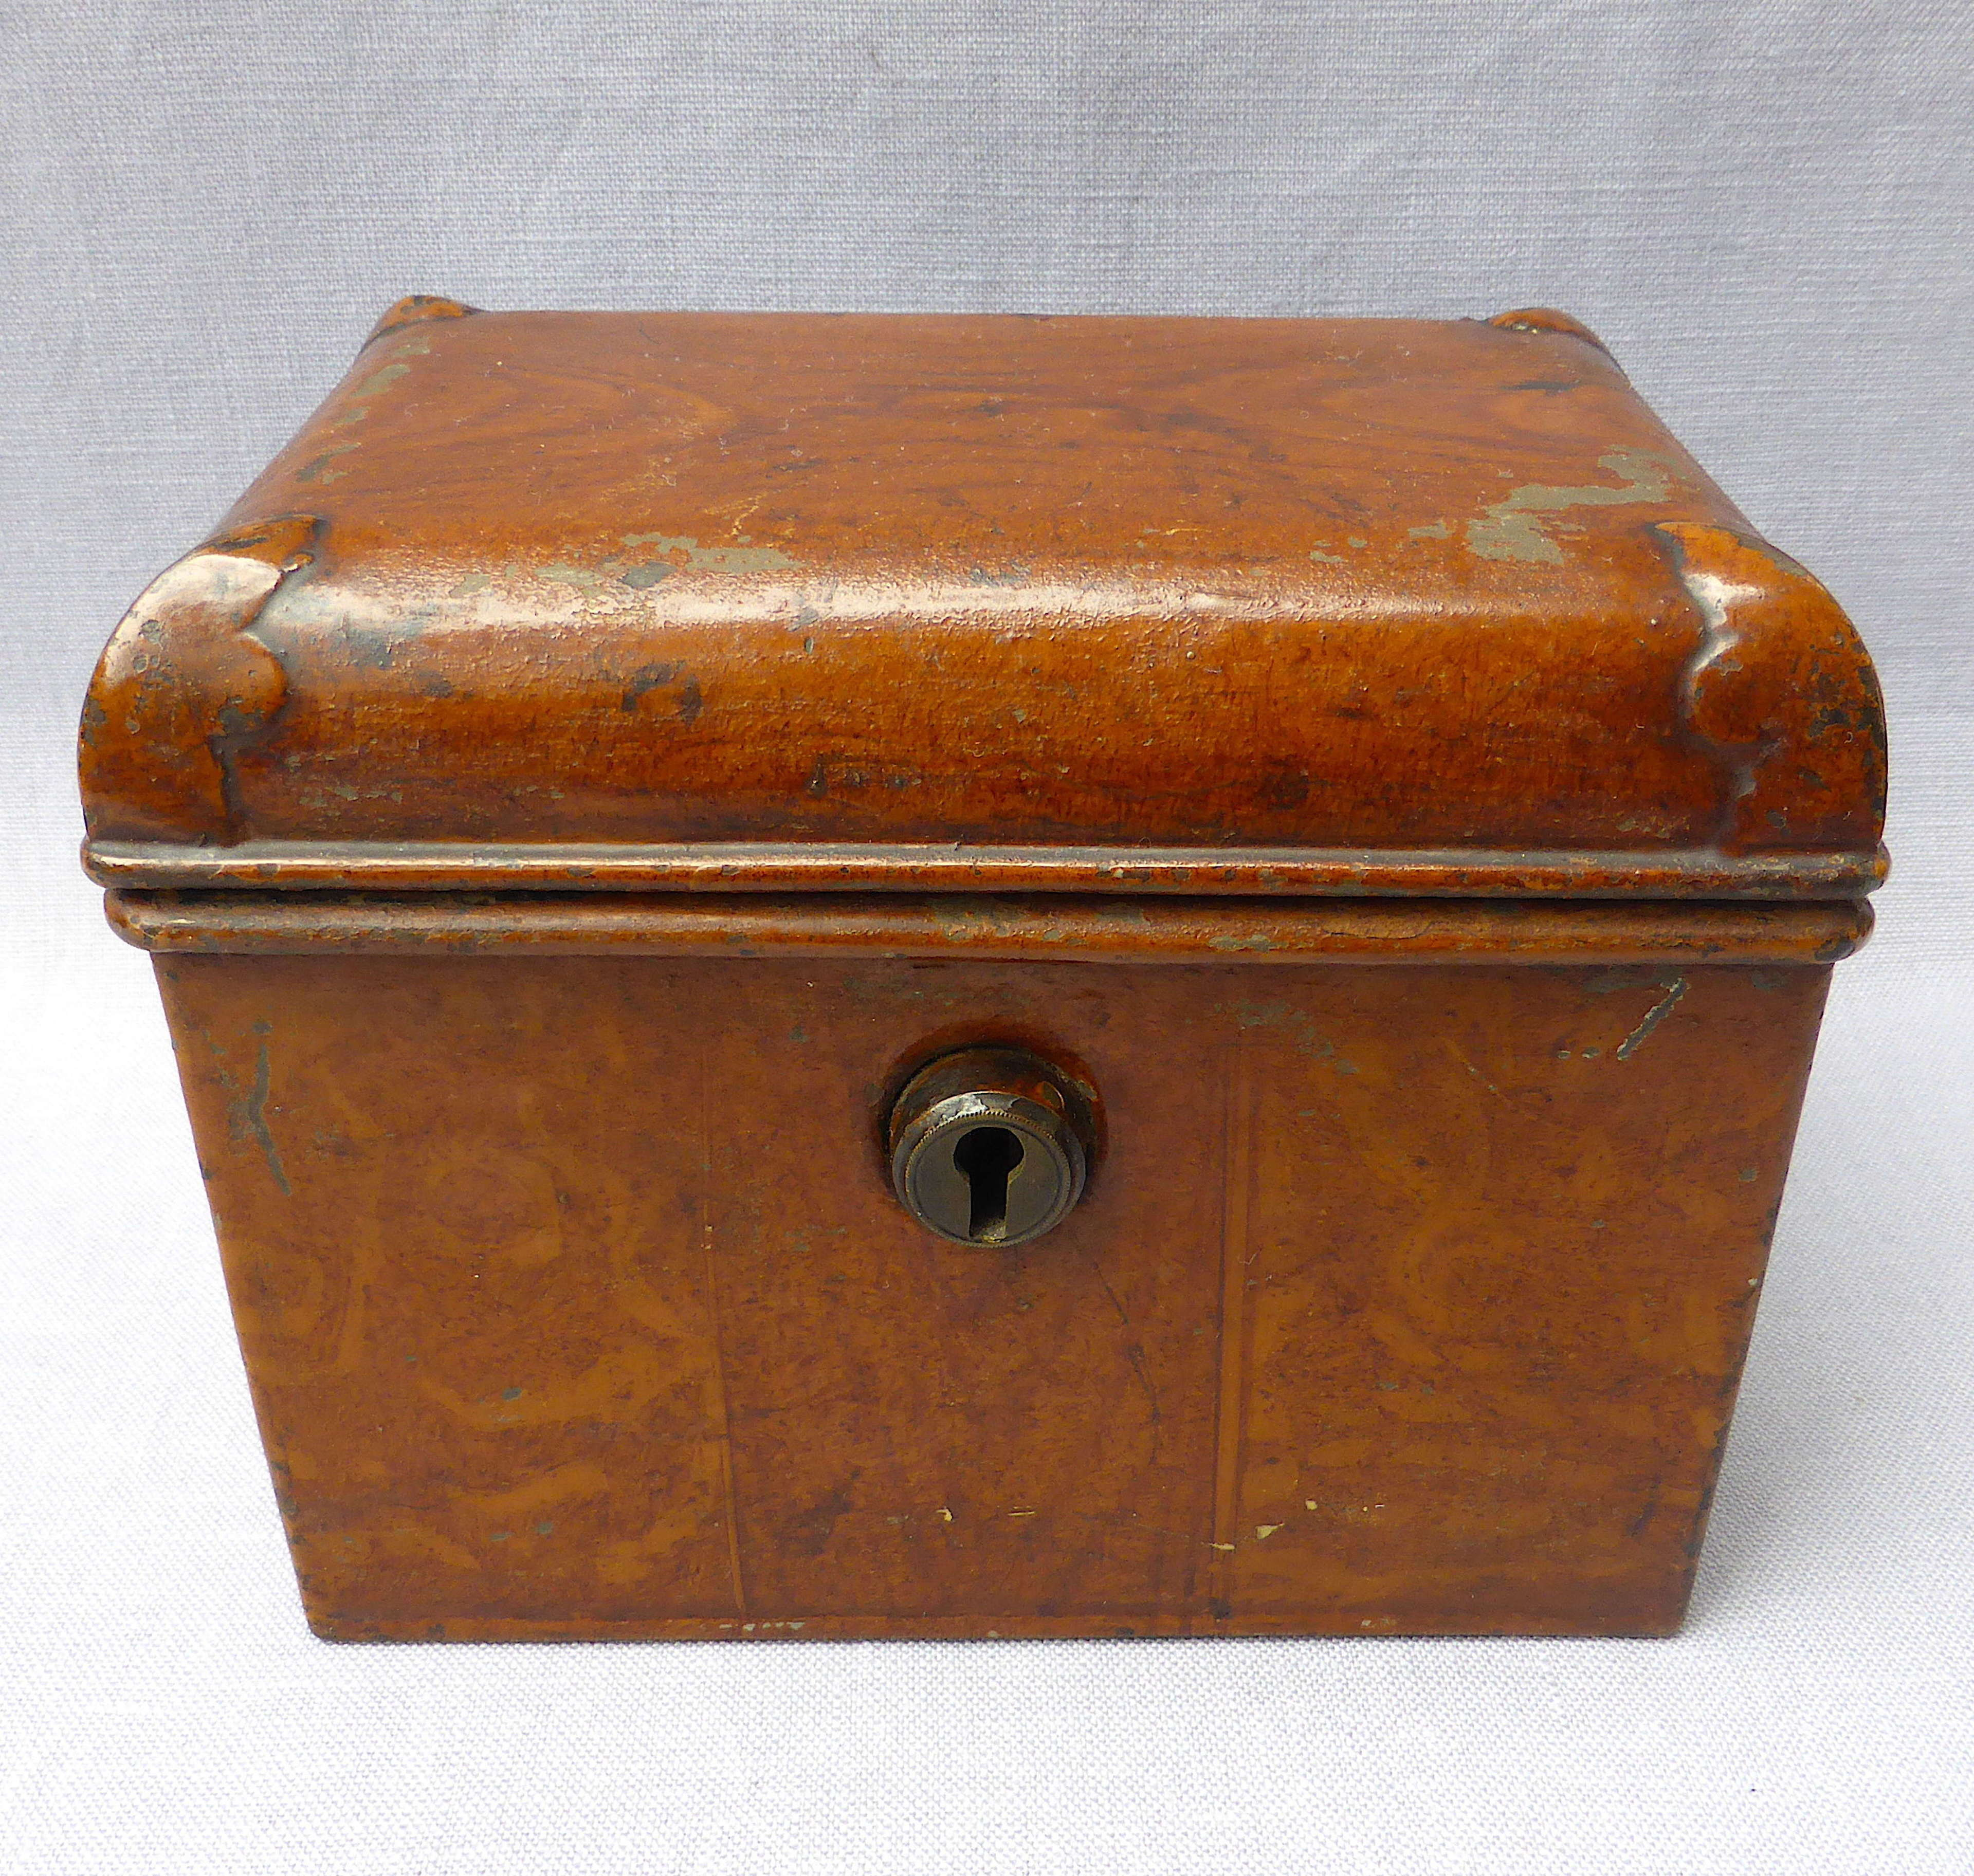 Doll's miniature tin trunk with wood grain finish